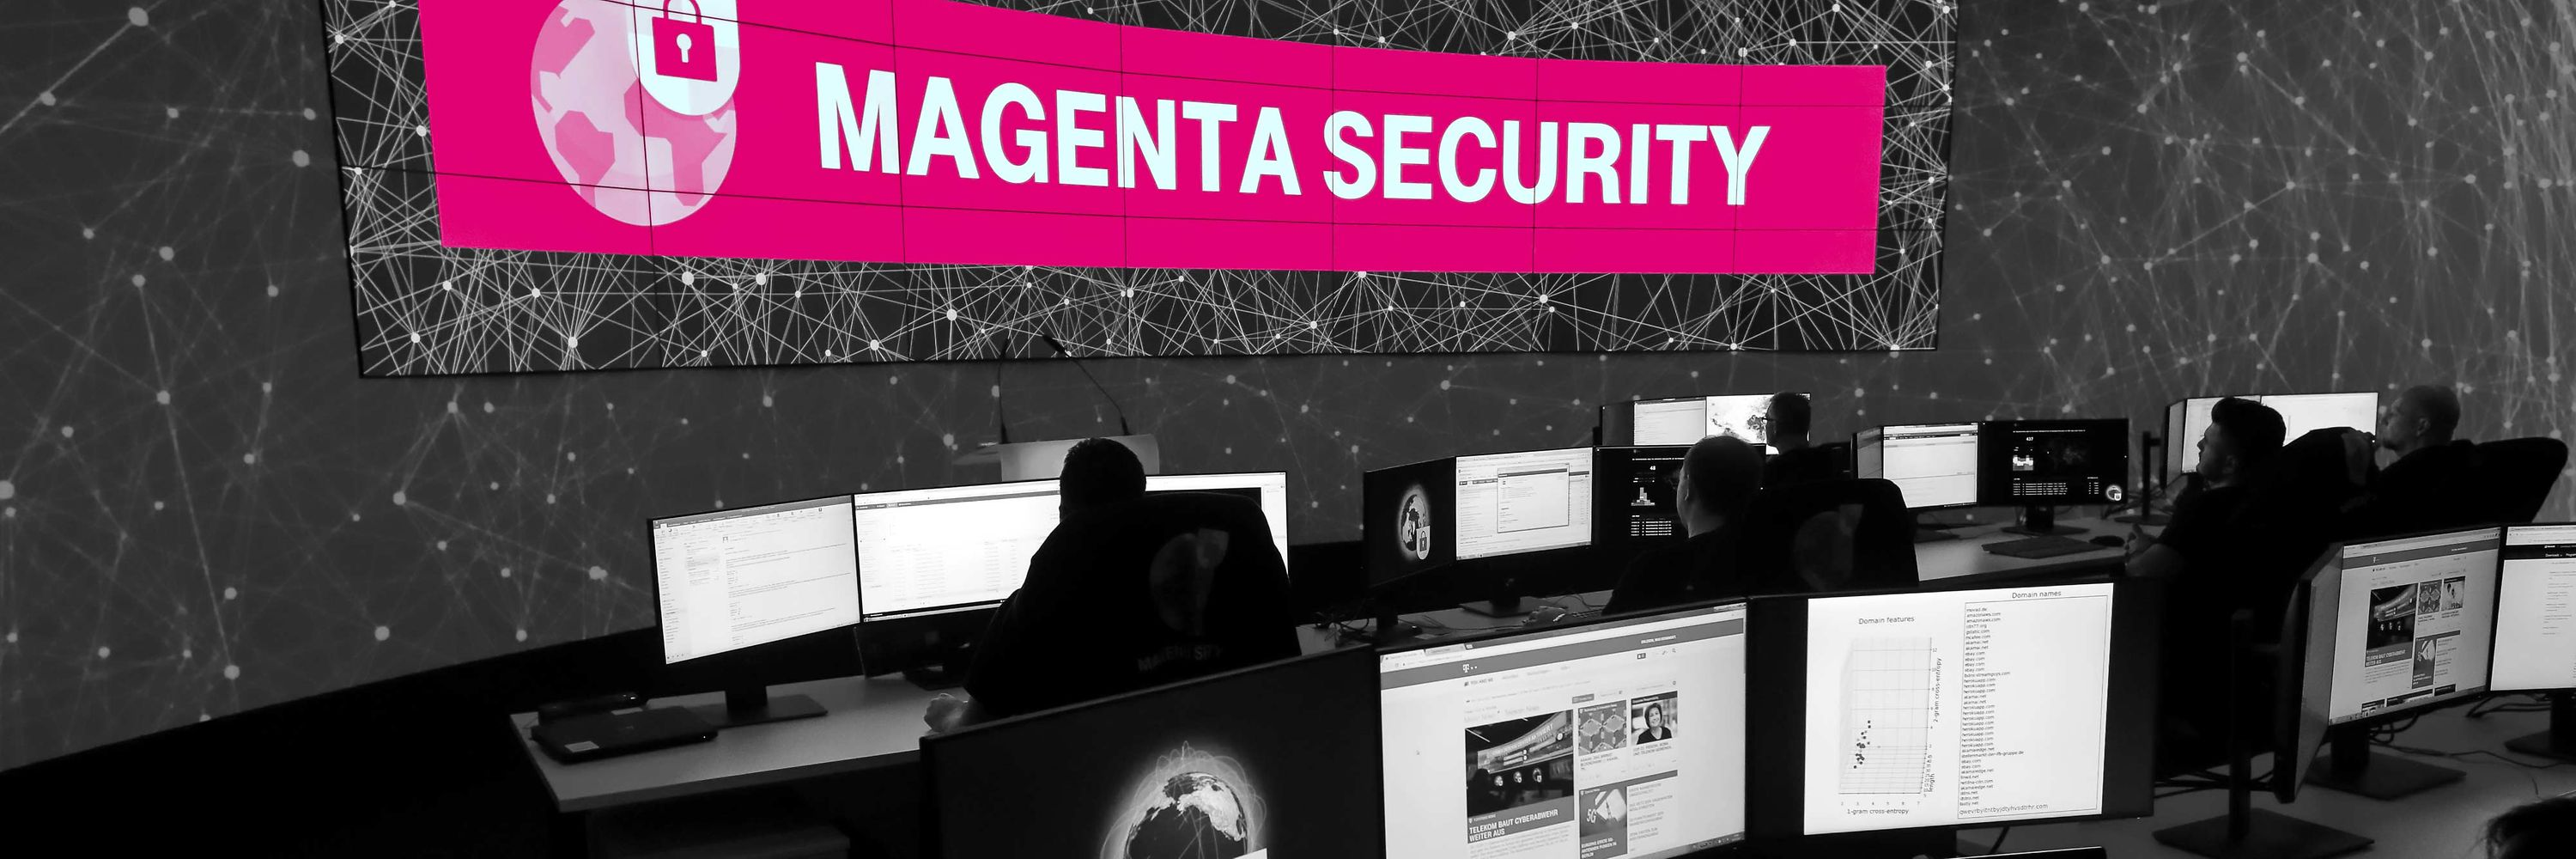 "A dark office with a virtual banner saying ""Magenta Security""."